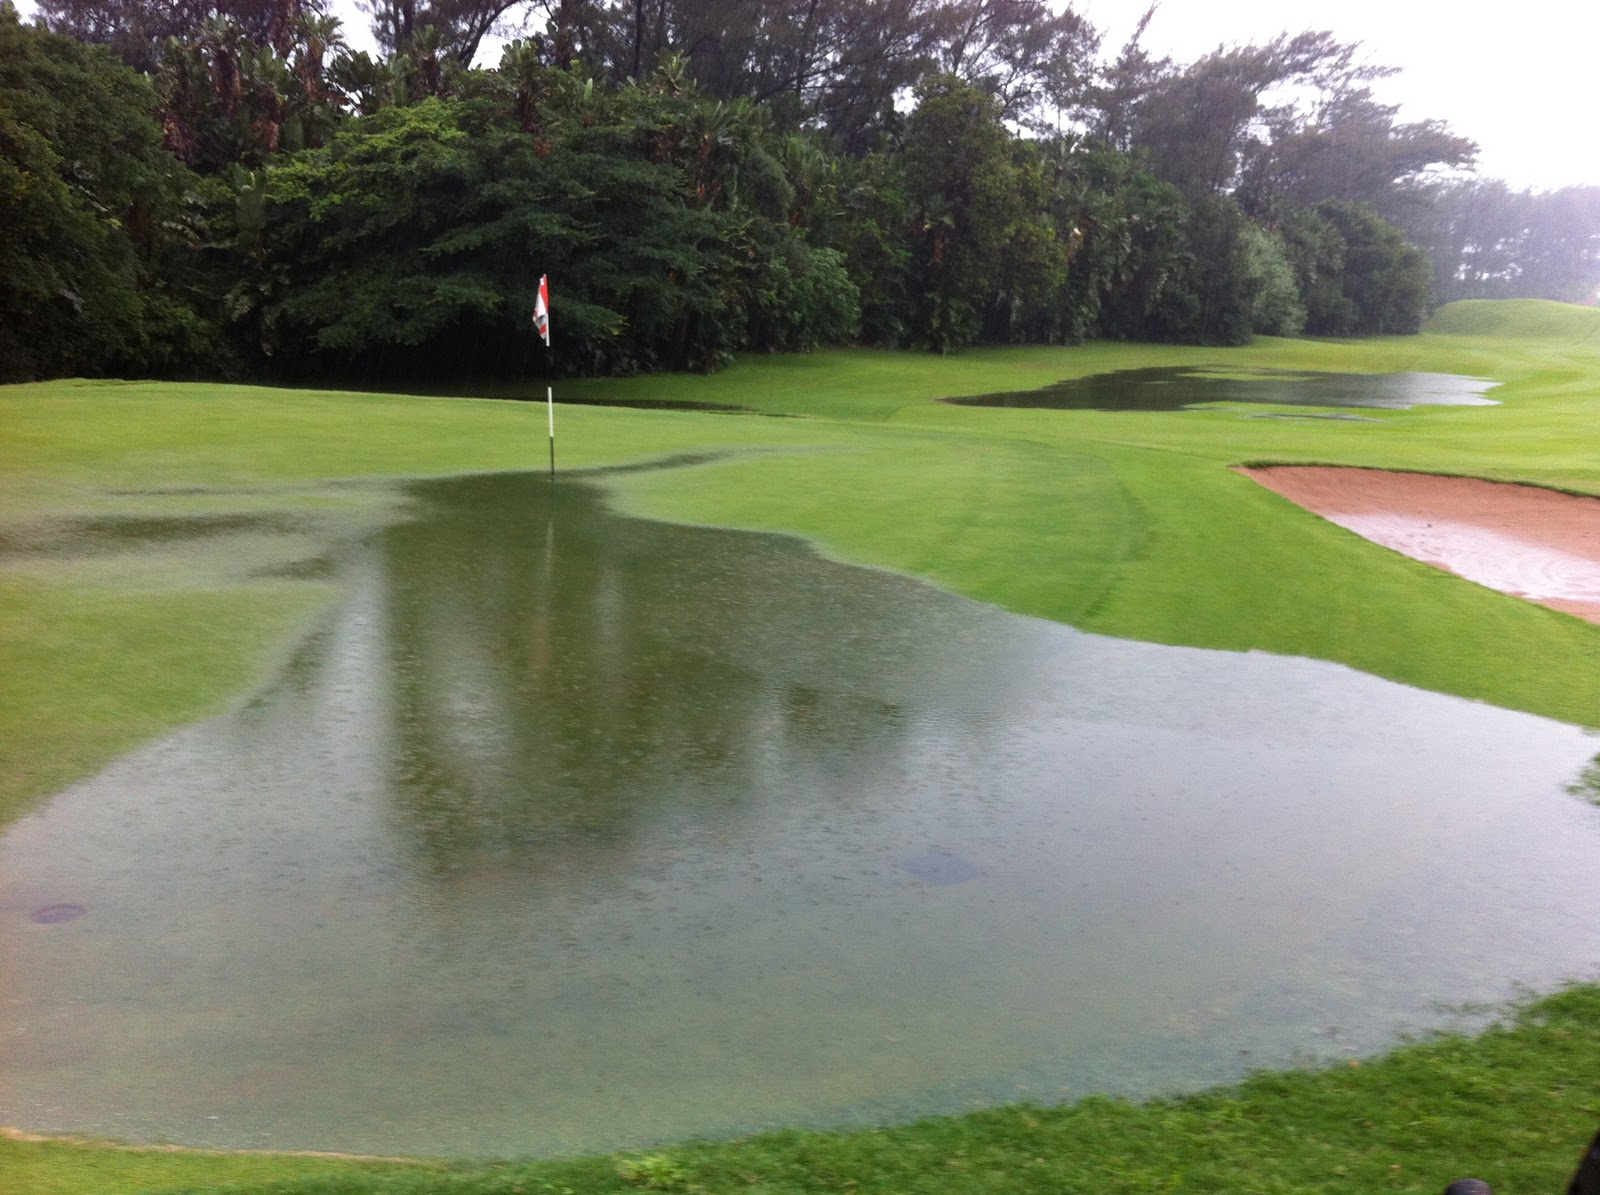 The Durban Country Club: Durban Country Club Golf Course: Why The Course Was Closed